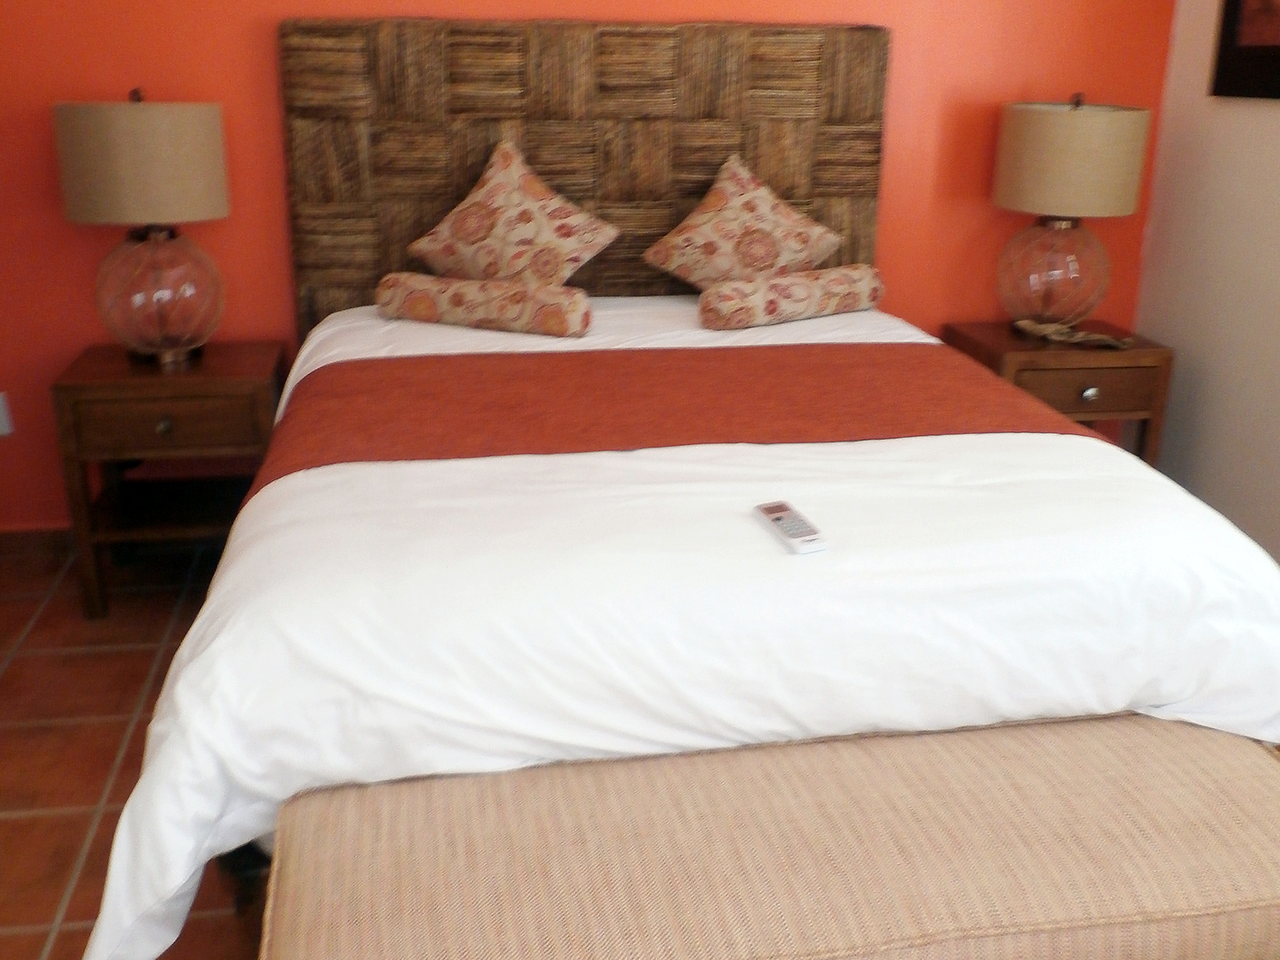 Private Queen Room with Private Bath at Divers Inn MX Bed & Breakfast in La Paz, Mexico